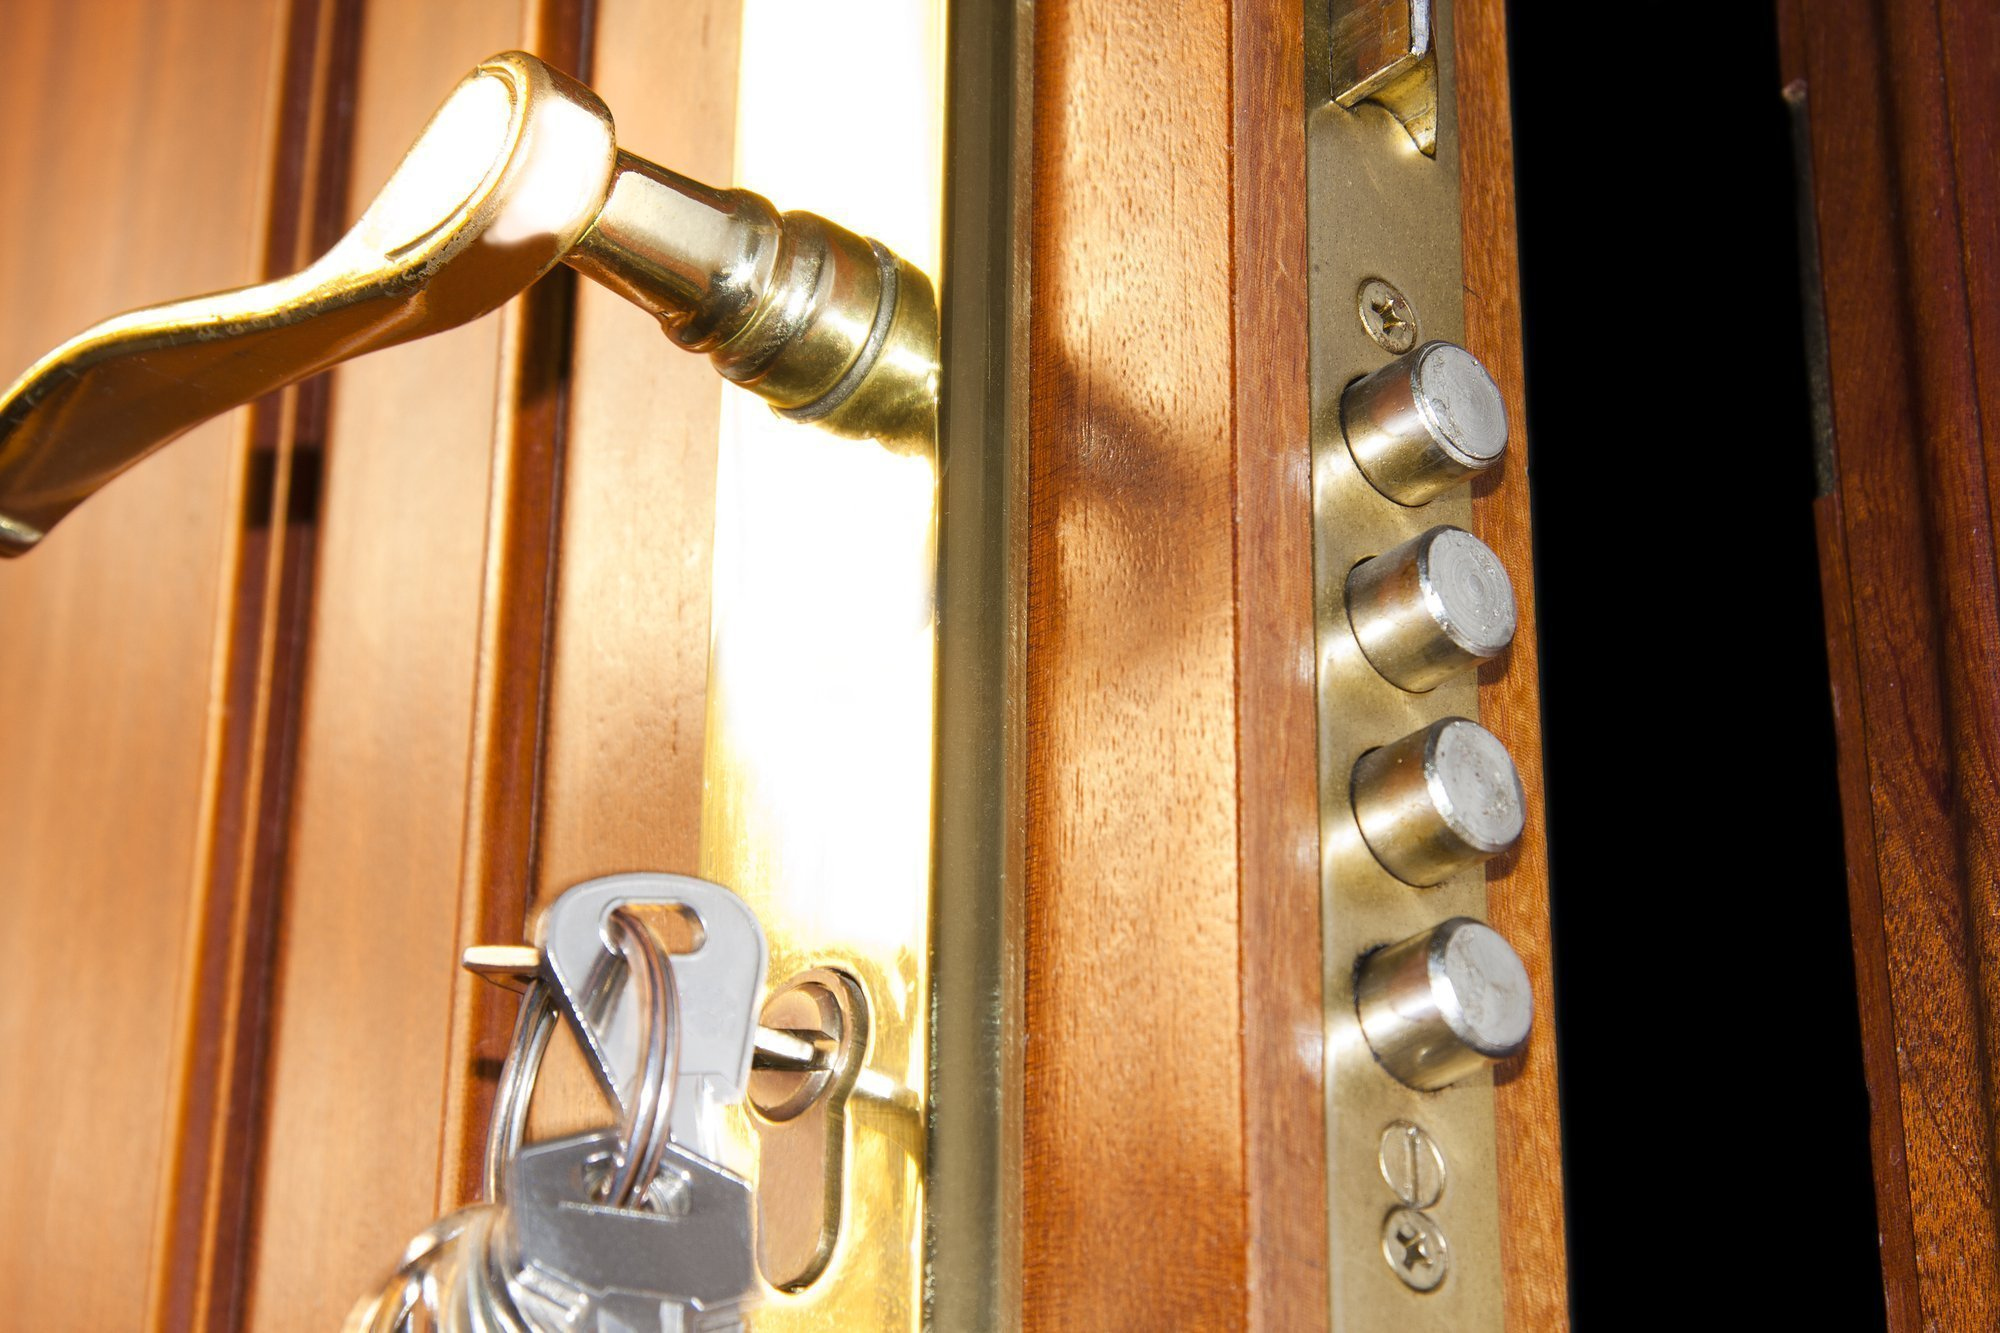 How to Pick the Right Lock for Your Home